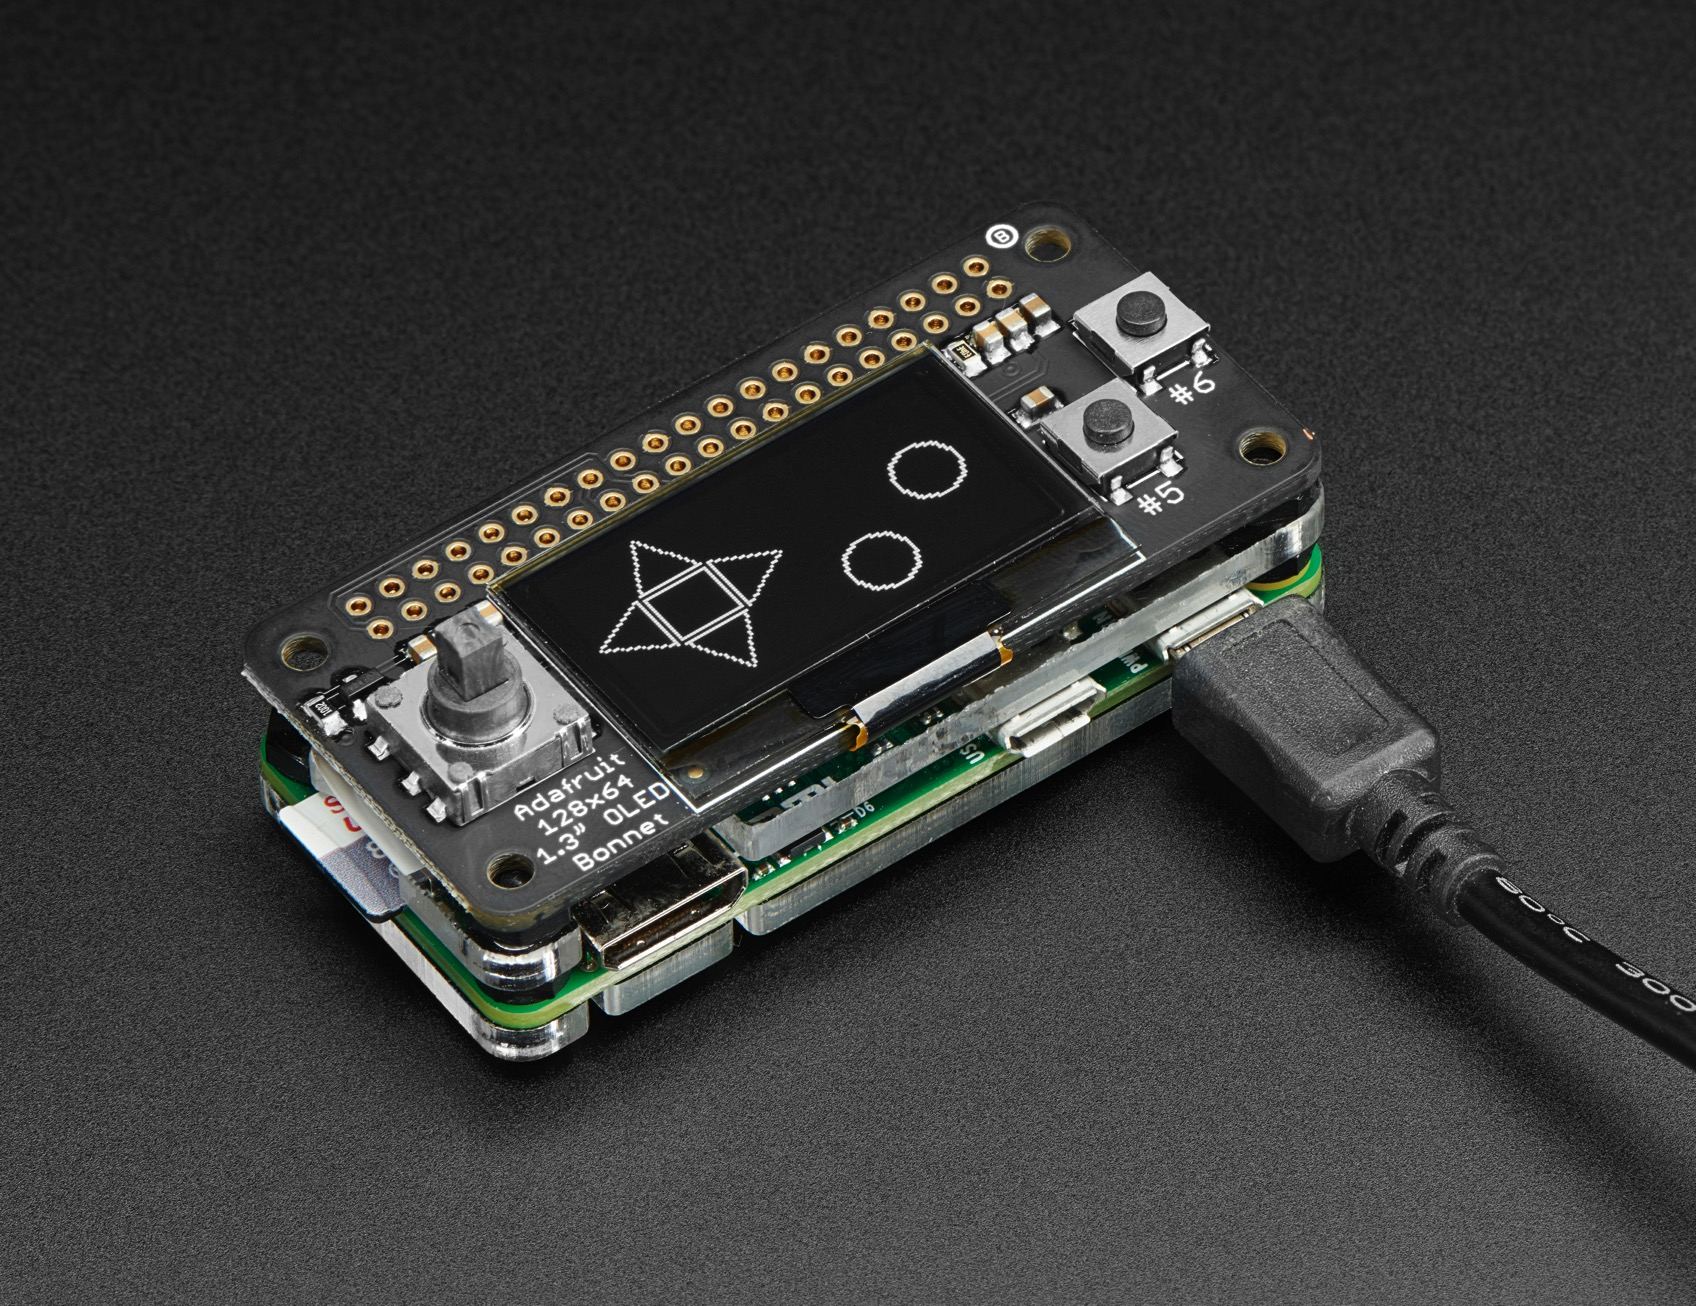 Oled Bonnet Pack For Raspberry Pi Zero Includes Pi Zero W Id 3192 34 95 Adafruit Industries Unique Fun Diy Electronics And Kits